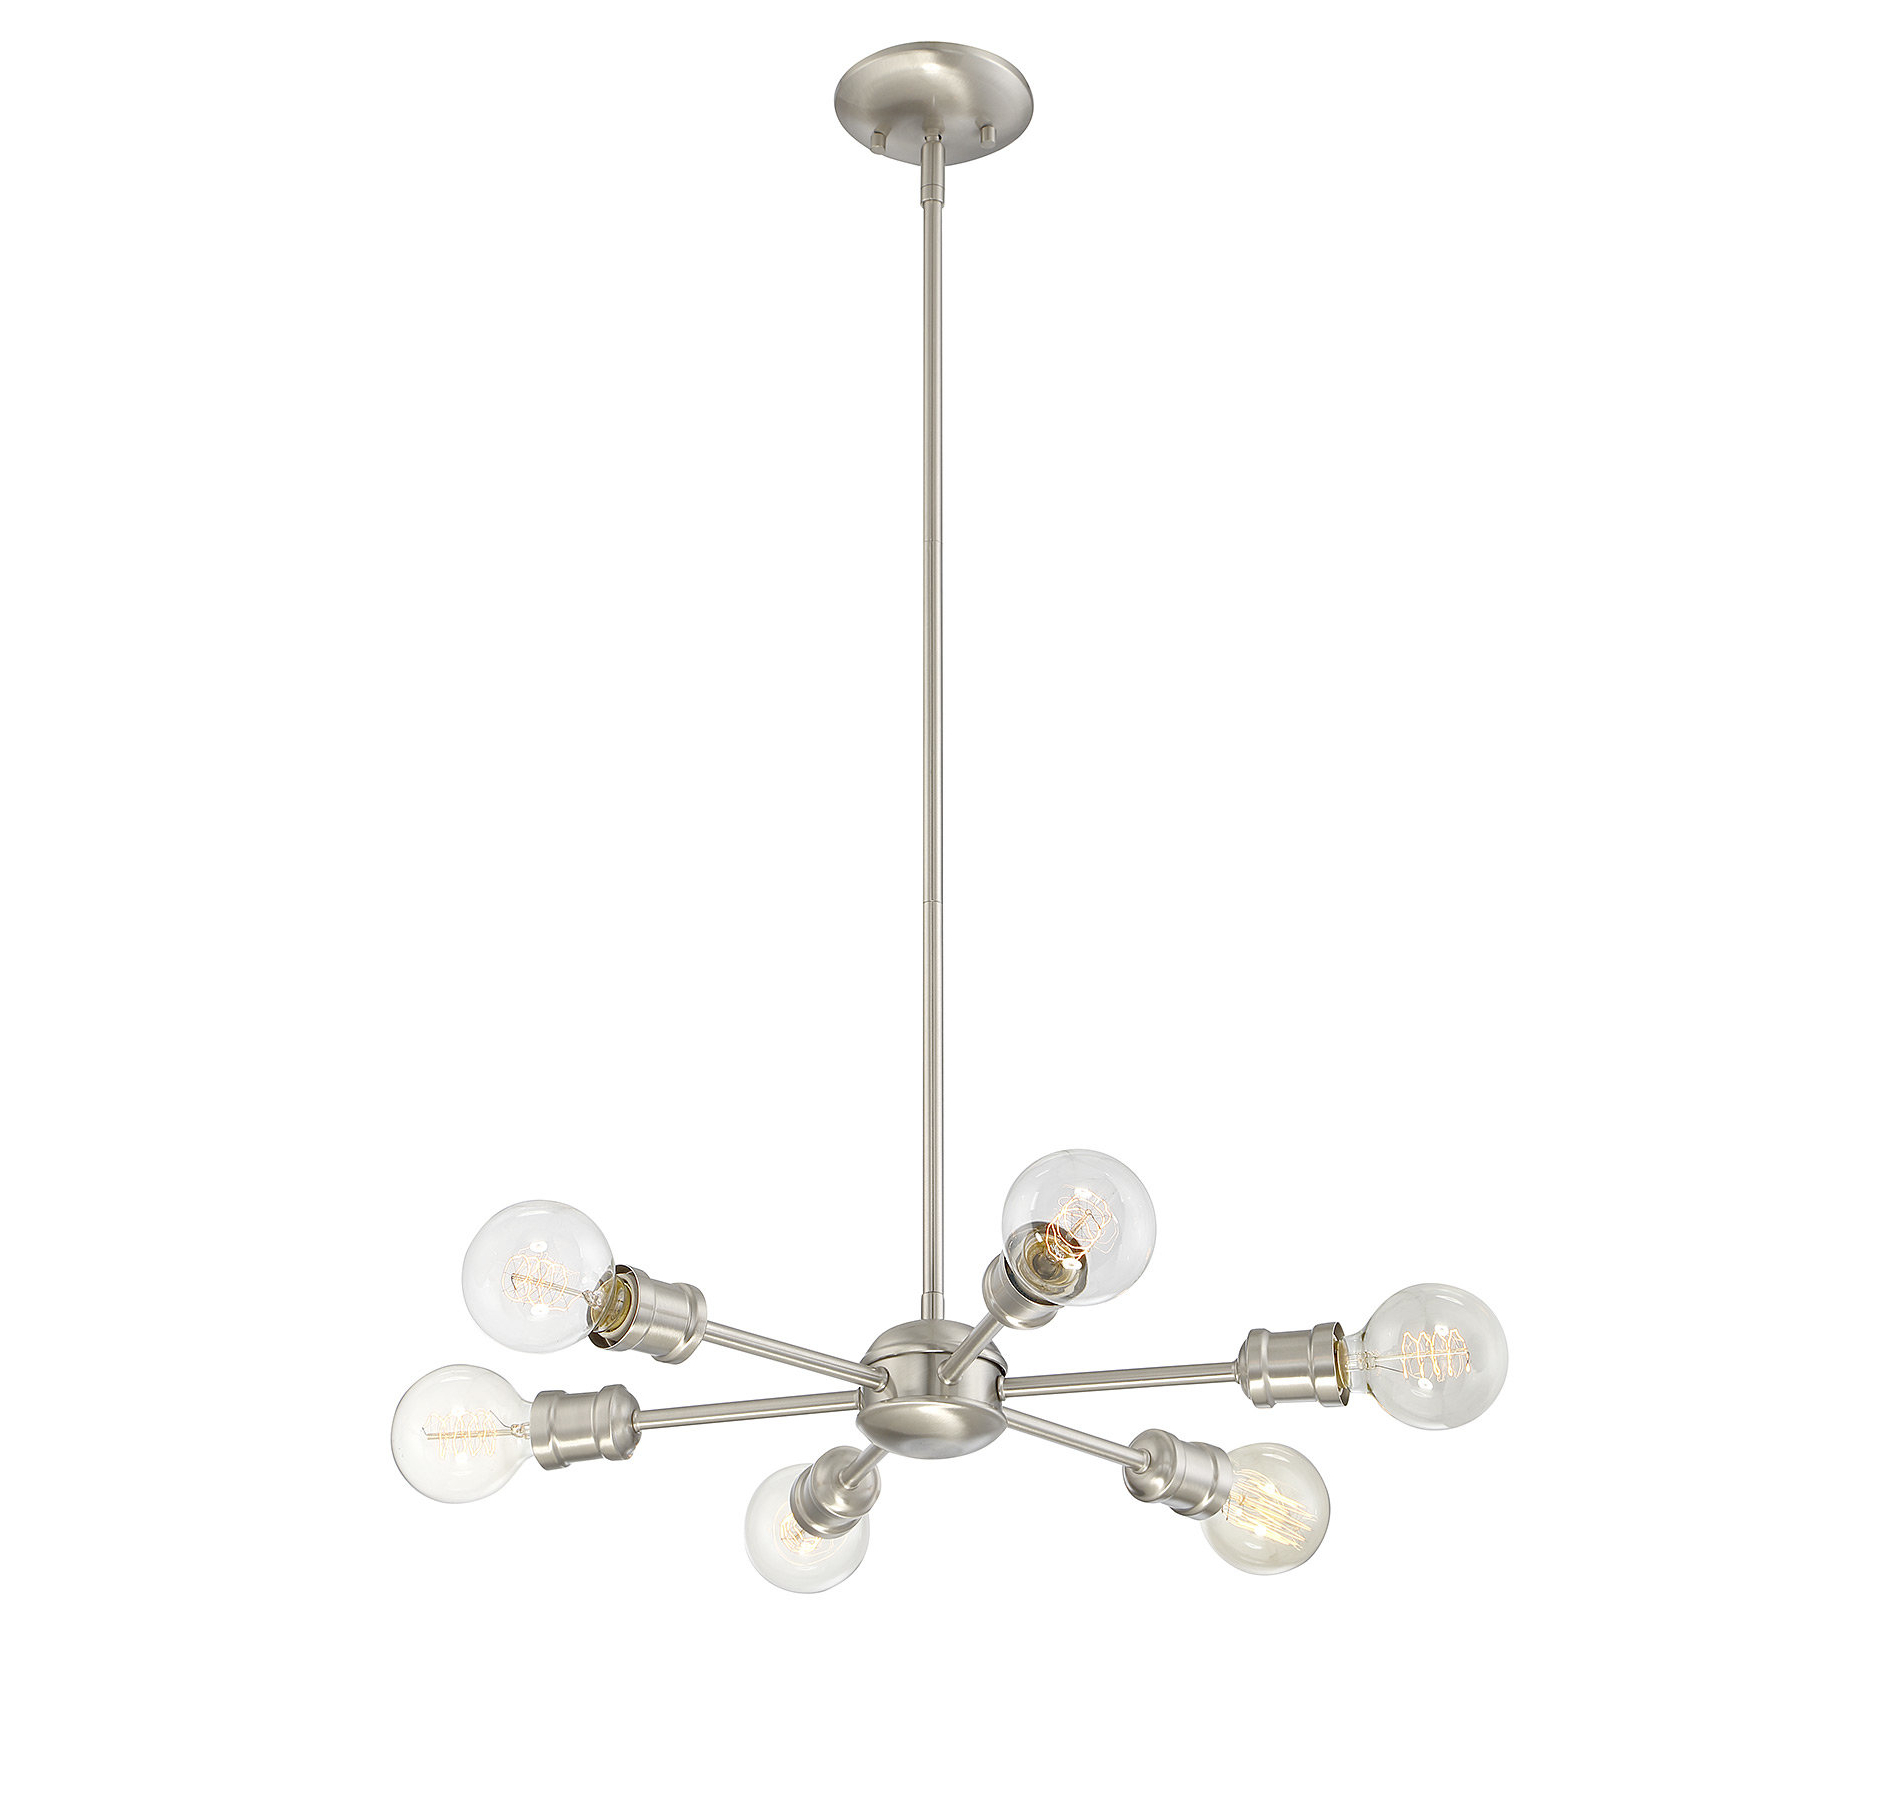 Bautista 6 Light Sputnik Chandelier With Regard To Current Asher 12 Light Sputnik Chandeliers (View 7 of 20)